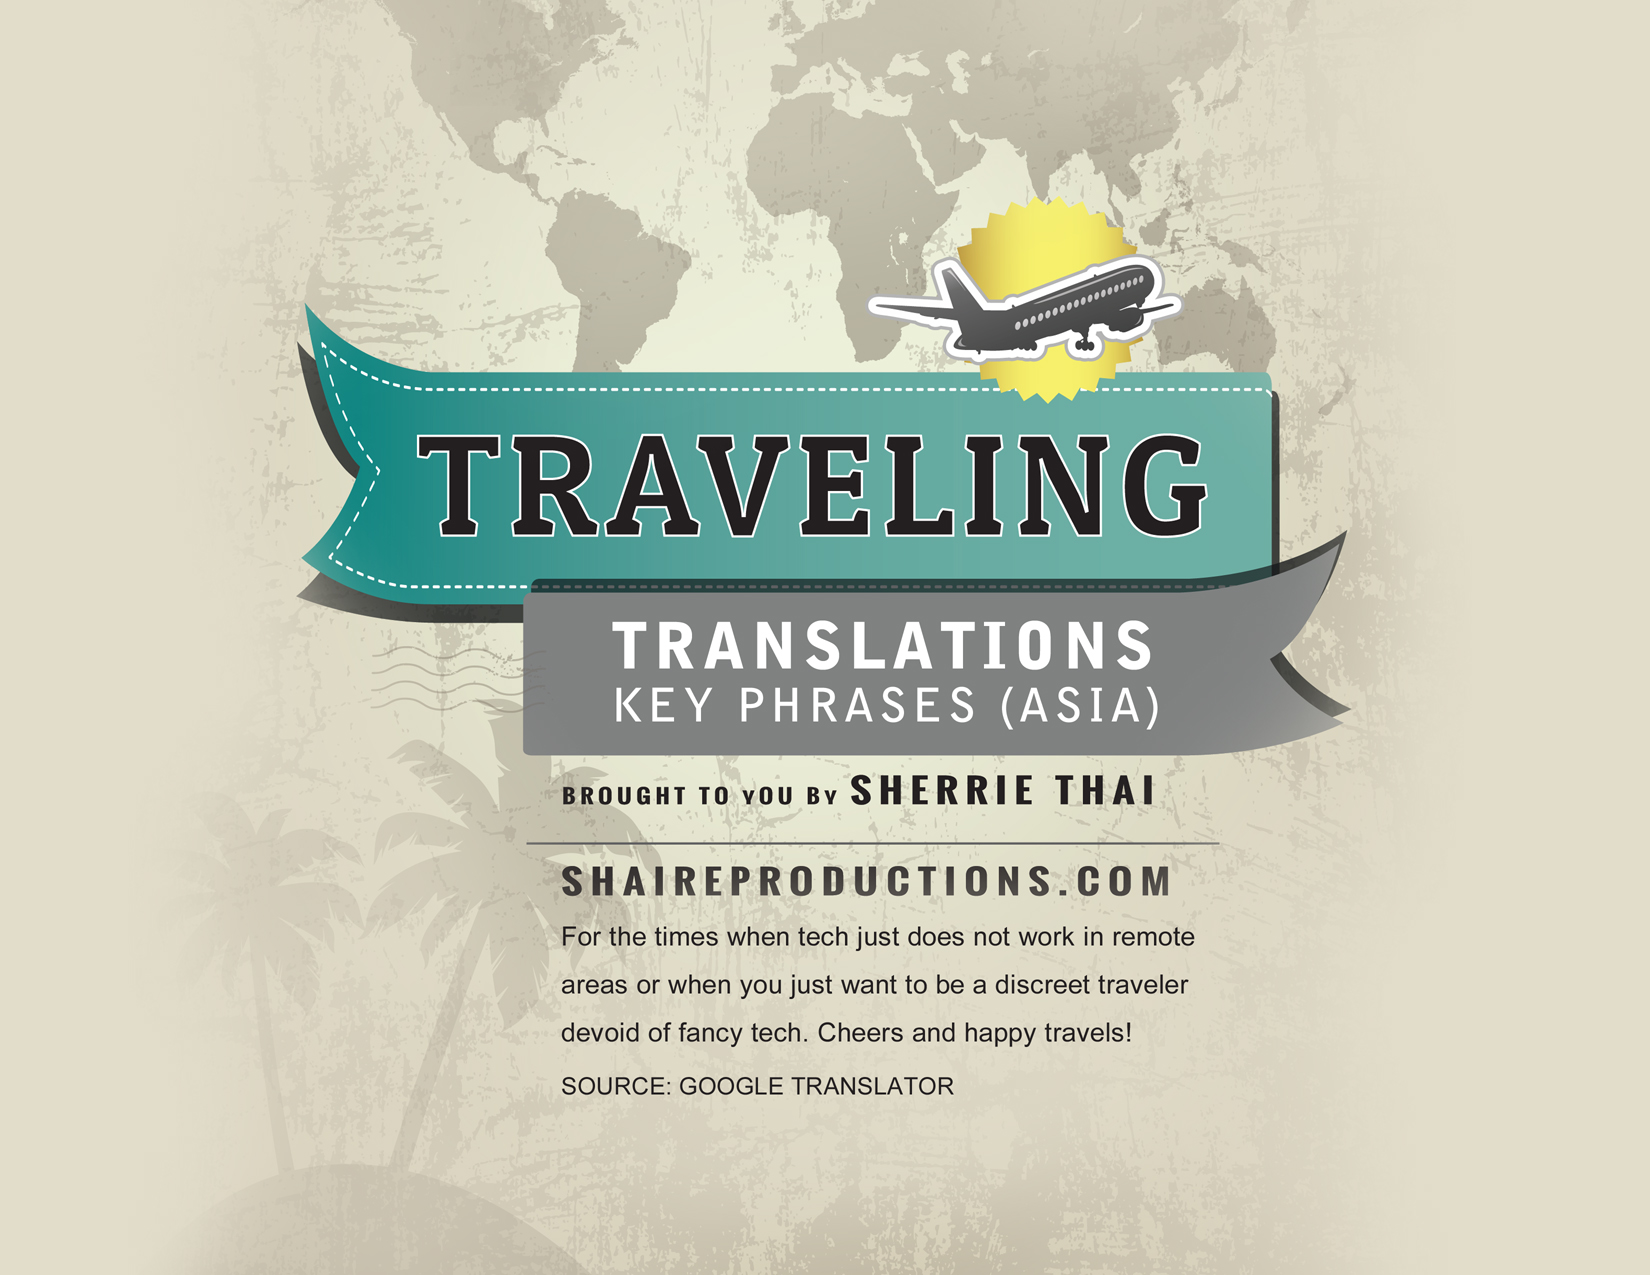 Travel translations, key phrases for Asia, art by Sherrie Thai of Shaireproductions.com